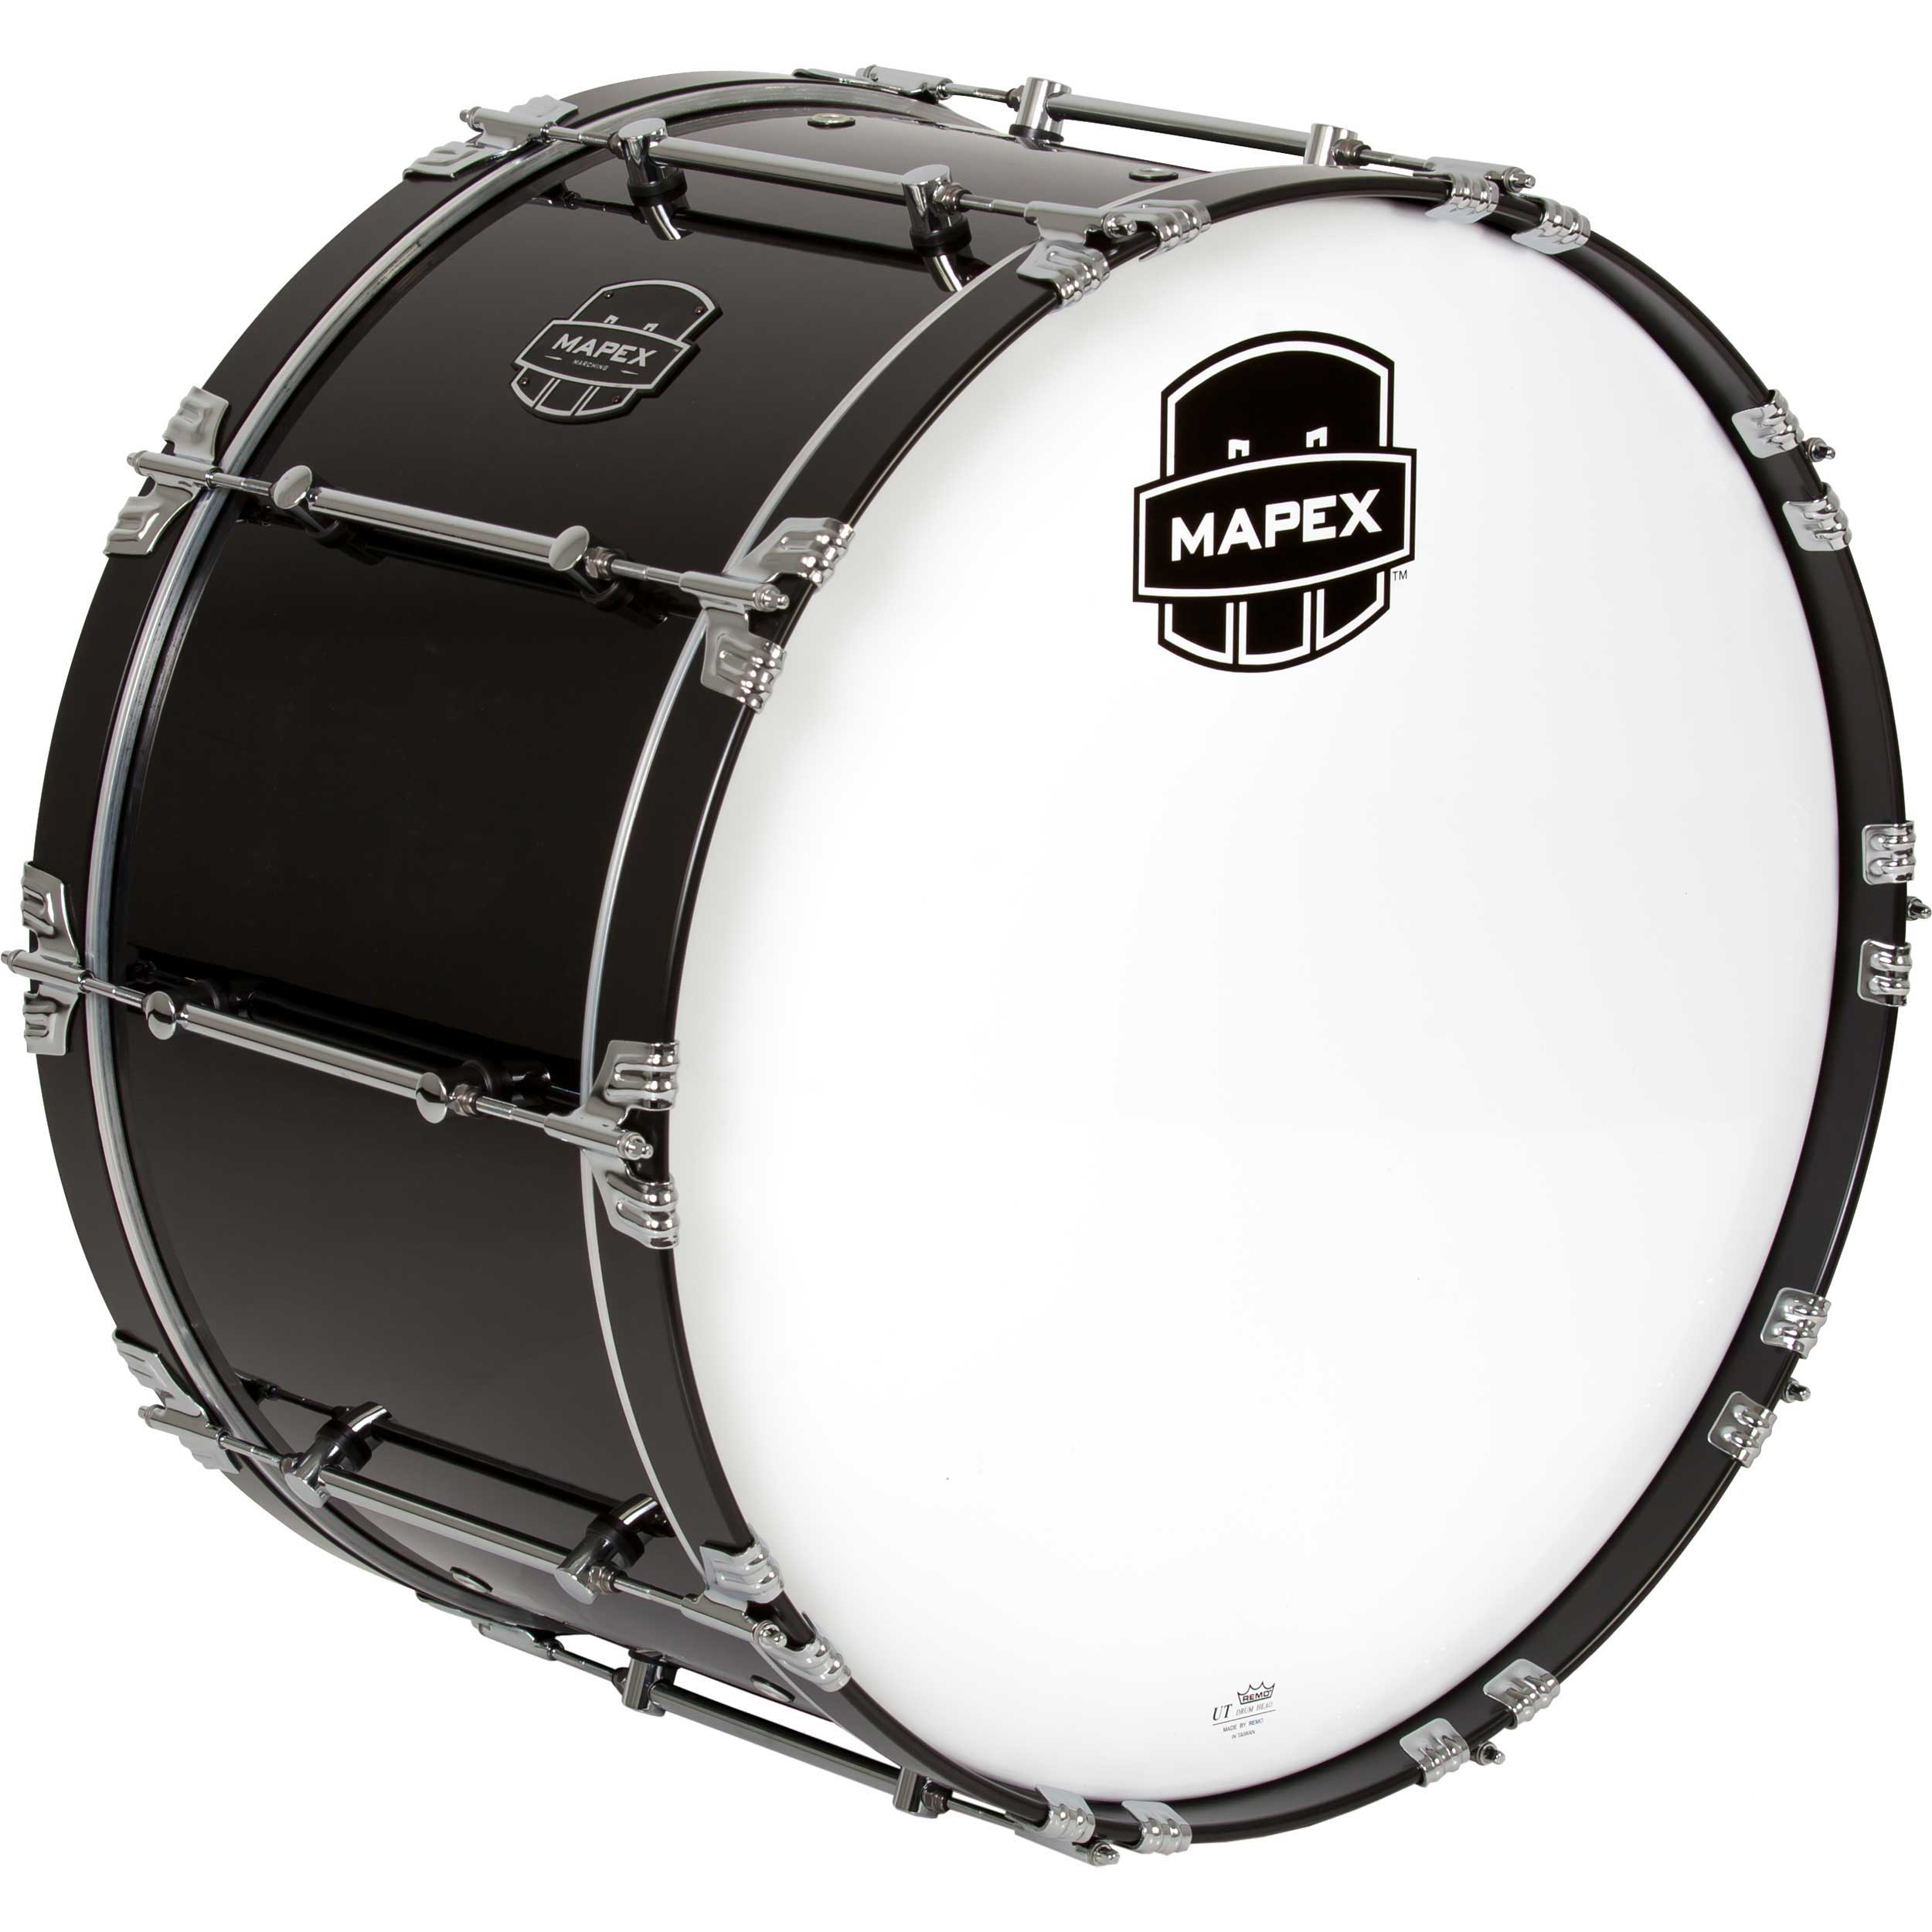 "Mapex 28"" x 15"" Quantum Marching Bass Drum in Gloss Black"